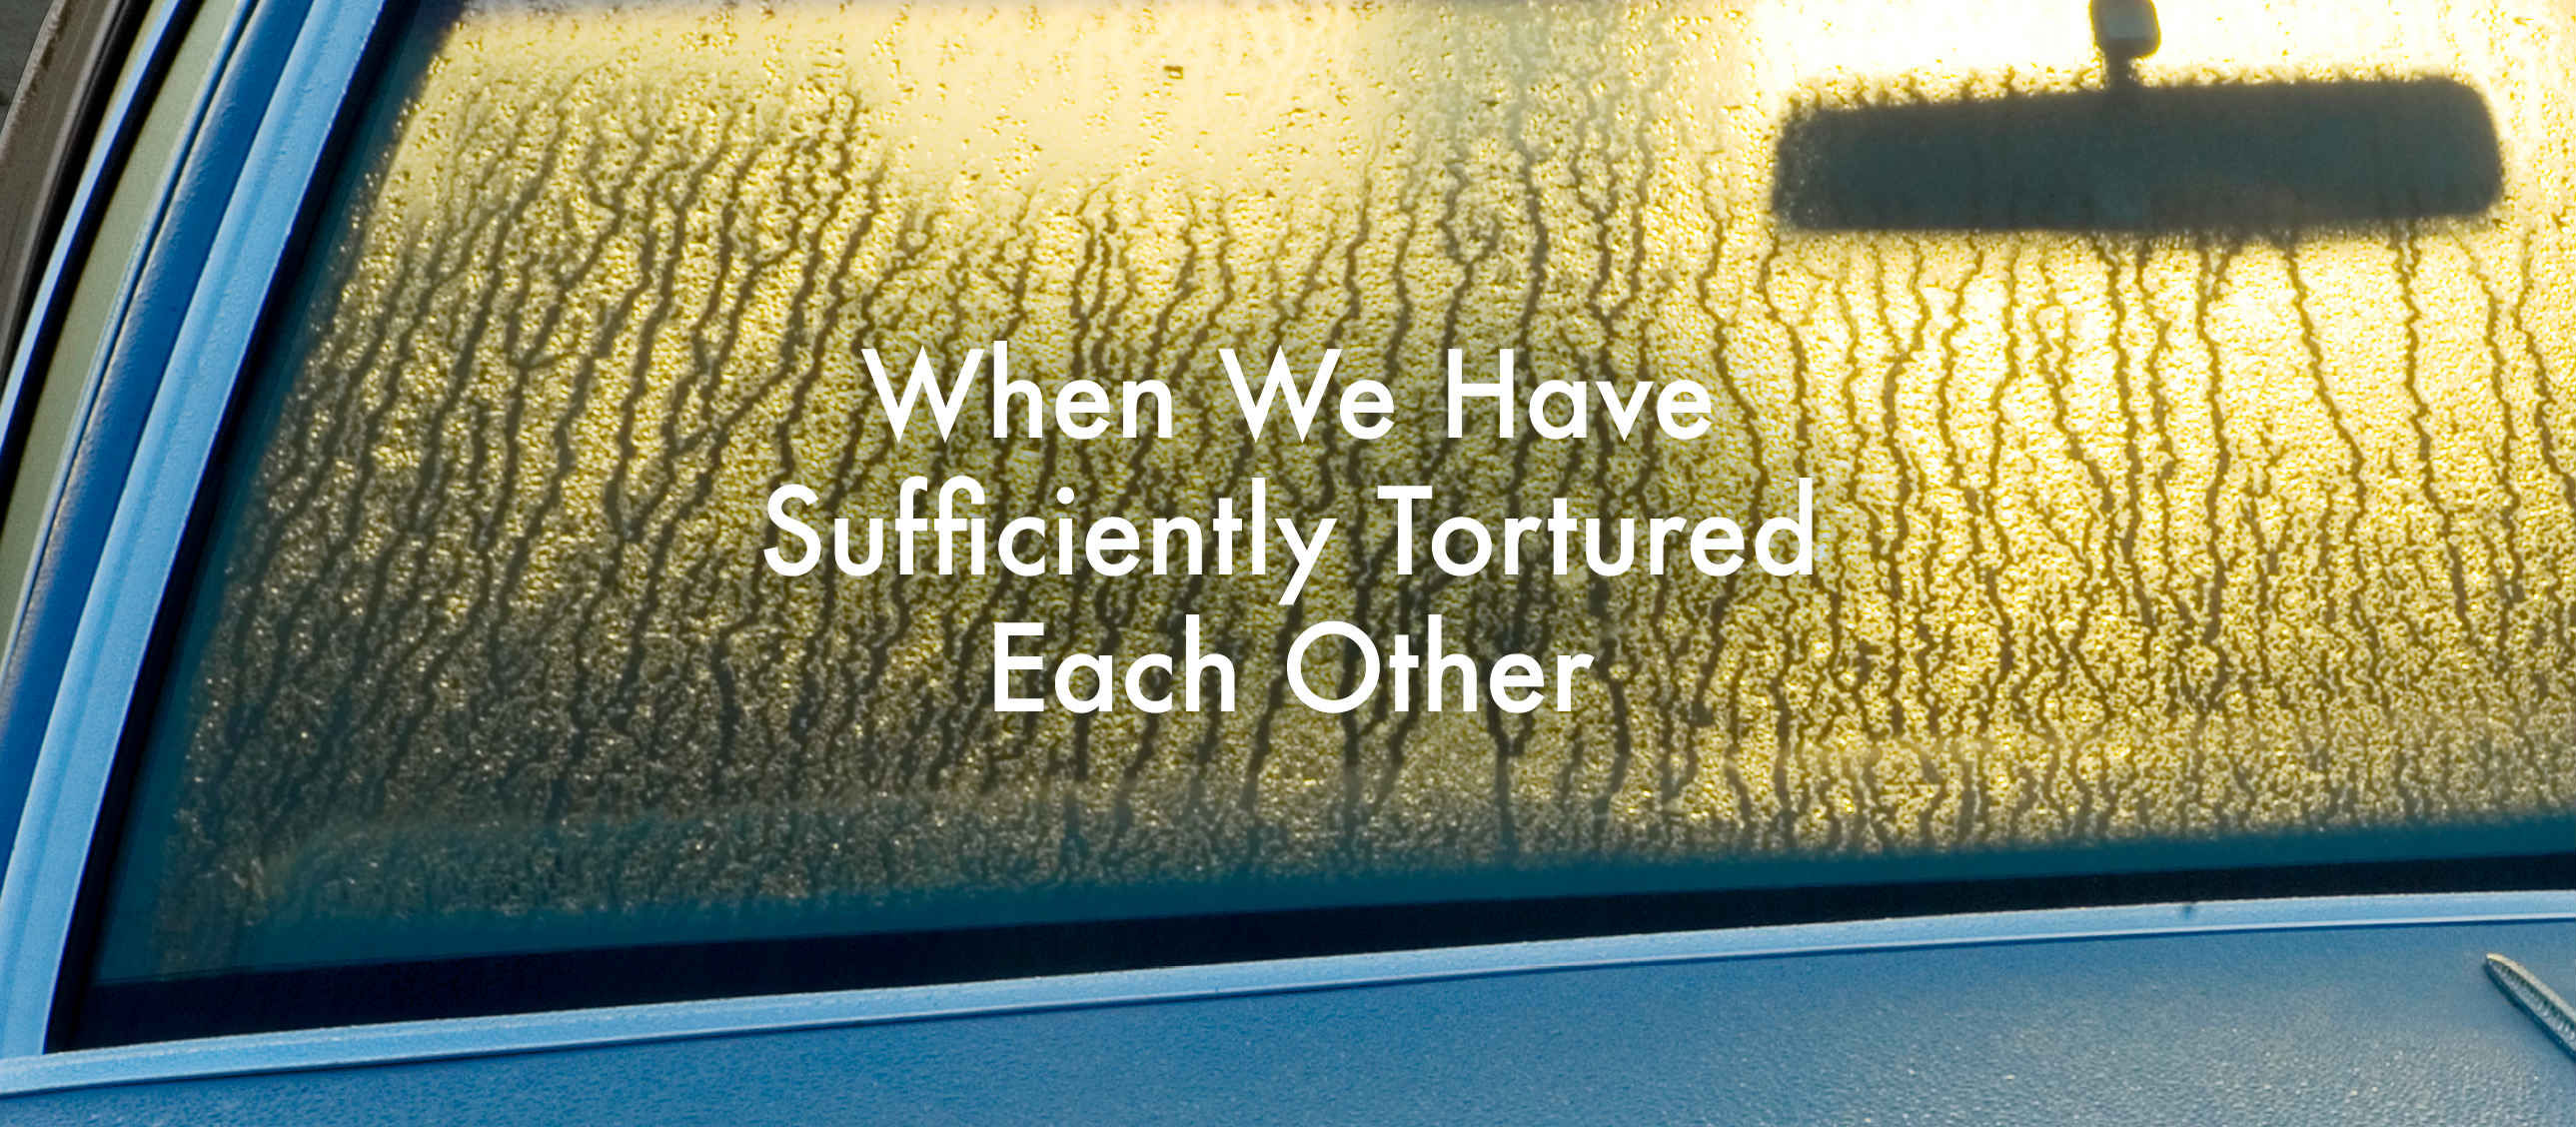 When We Have Sufficiently Tortured Each Other poster - a steamed up car winscreen